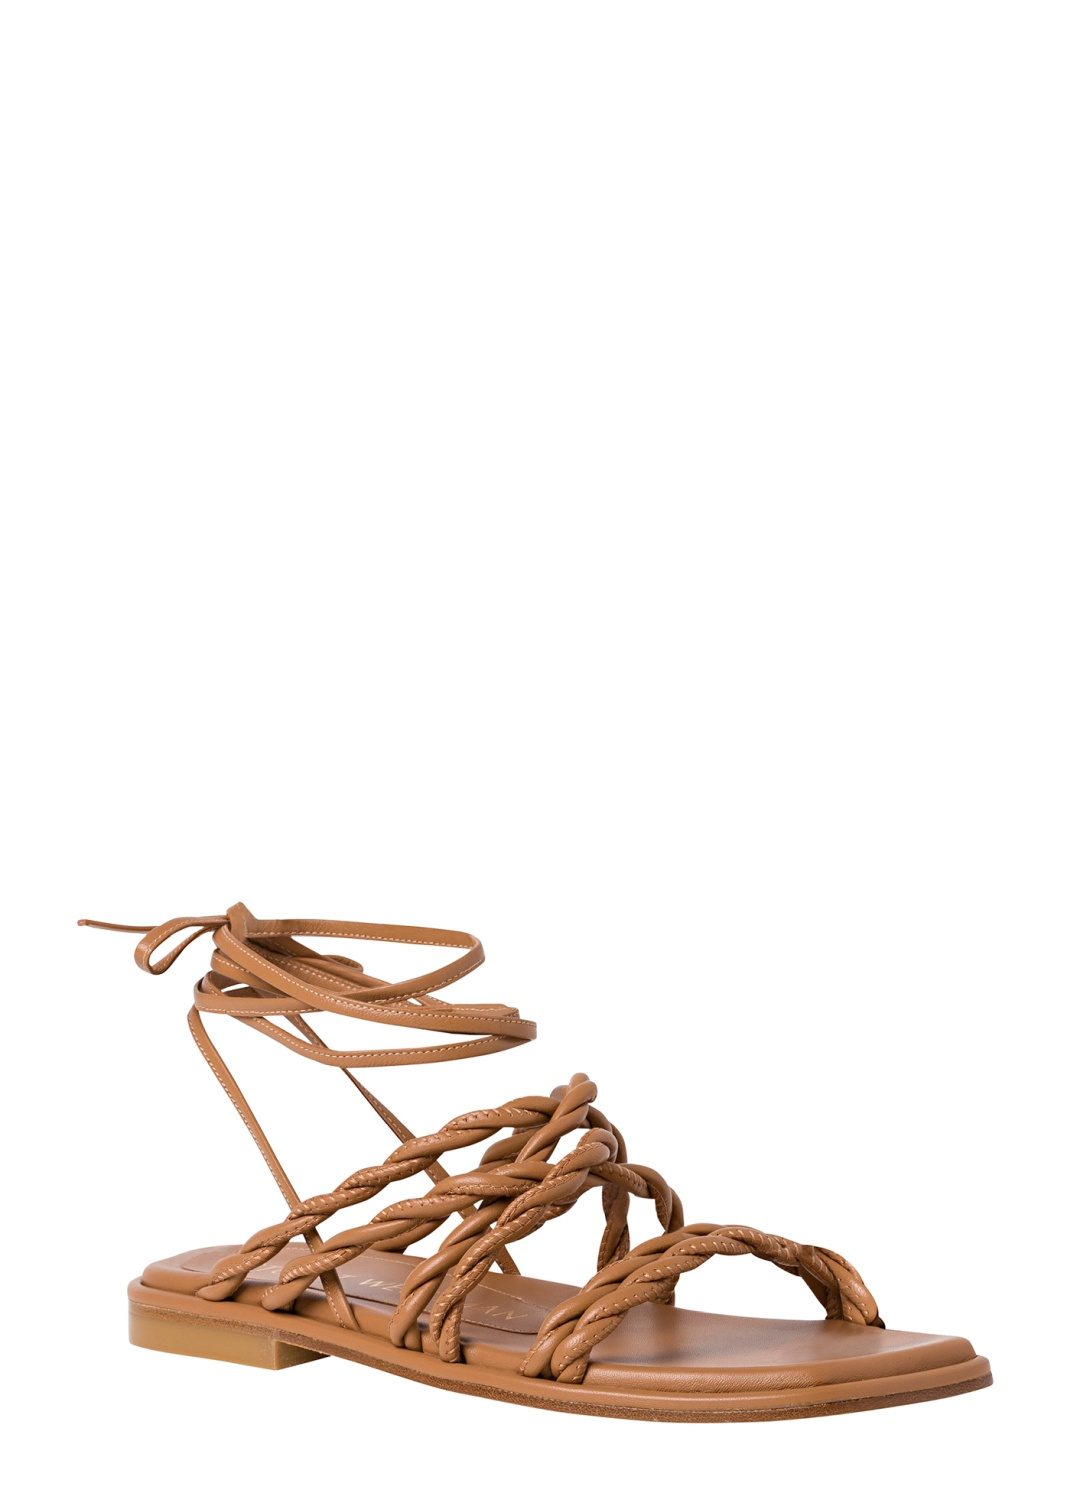 CALYPSO LACE-UP image number 1